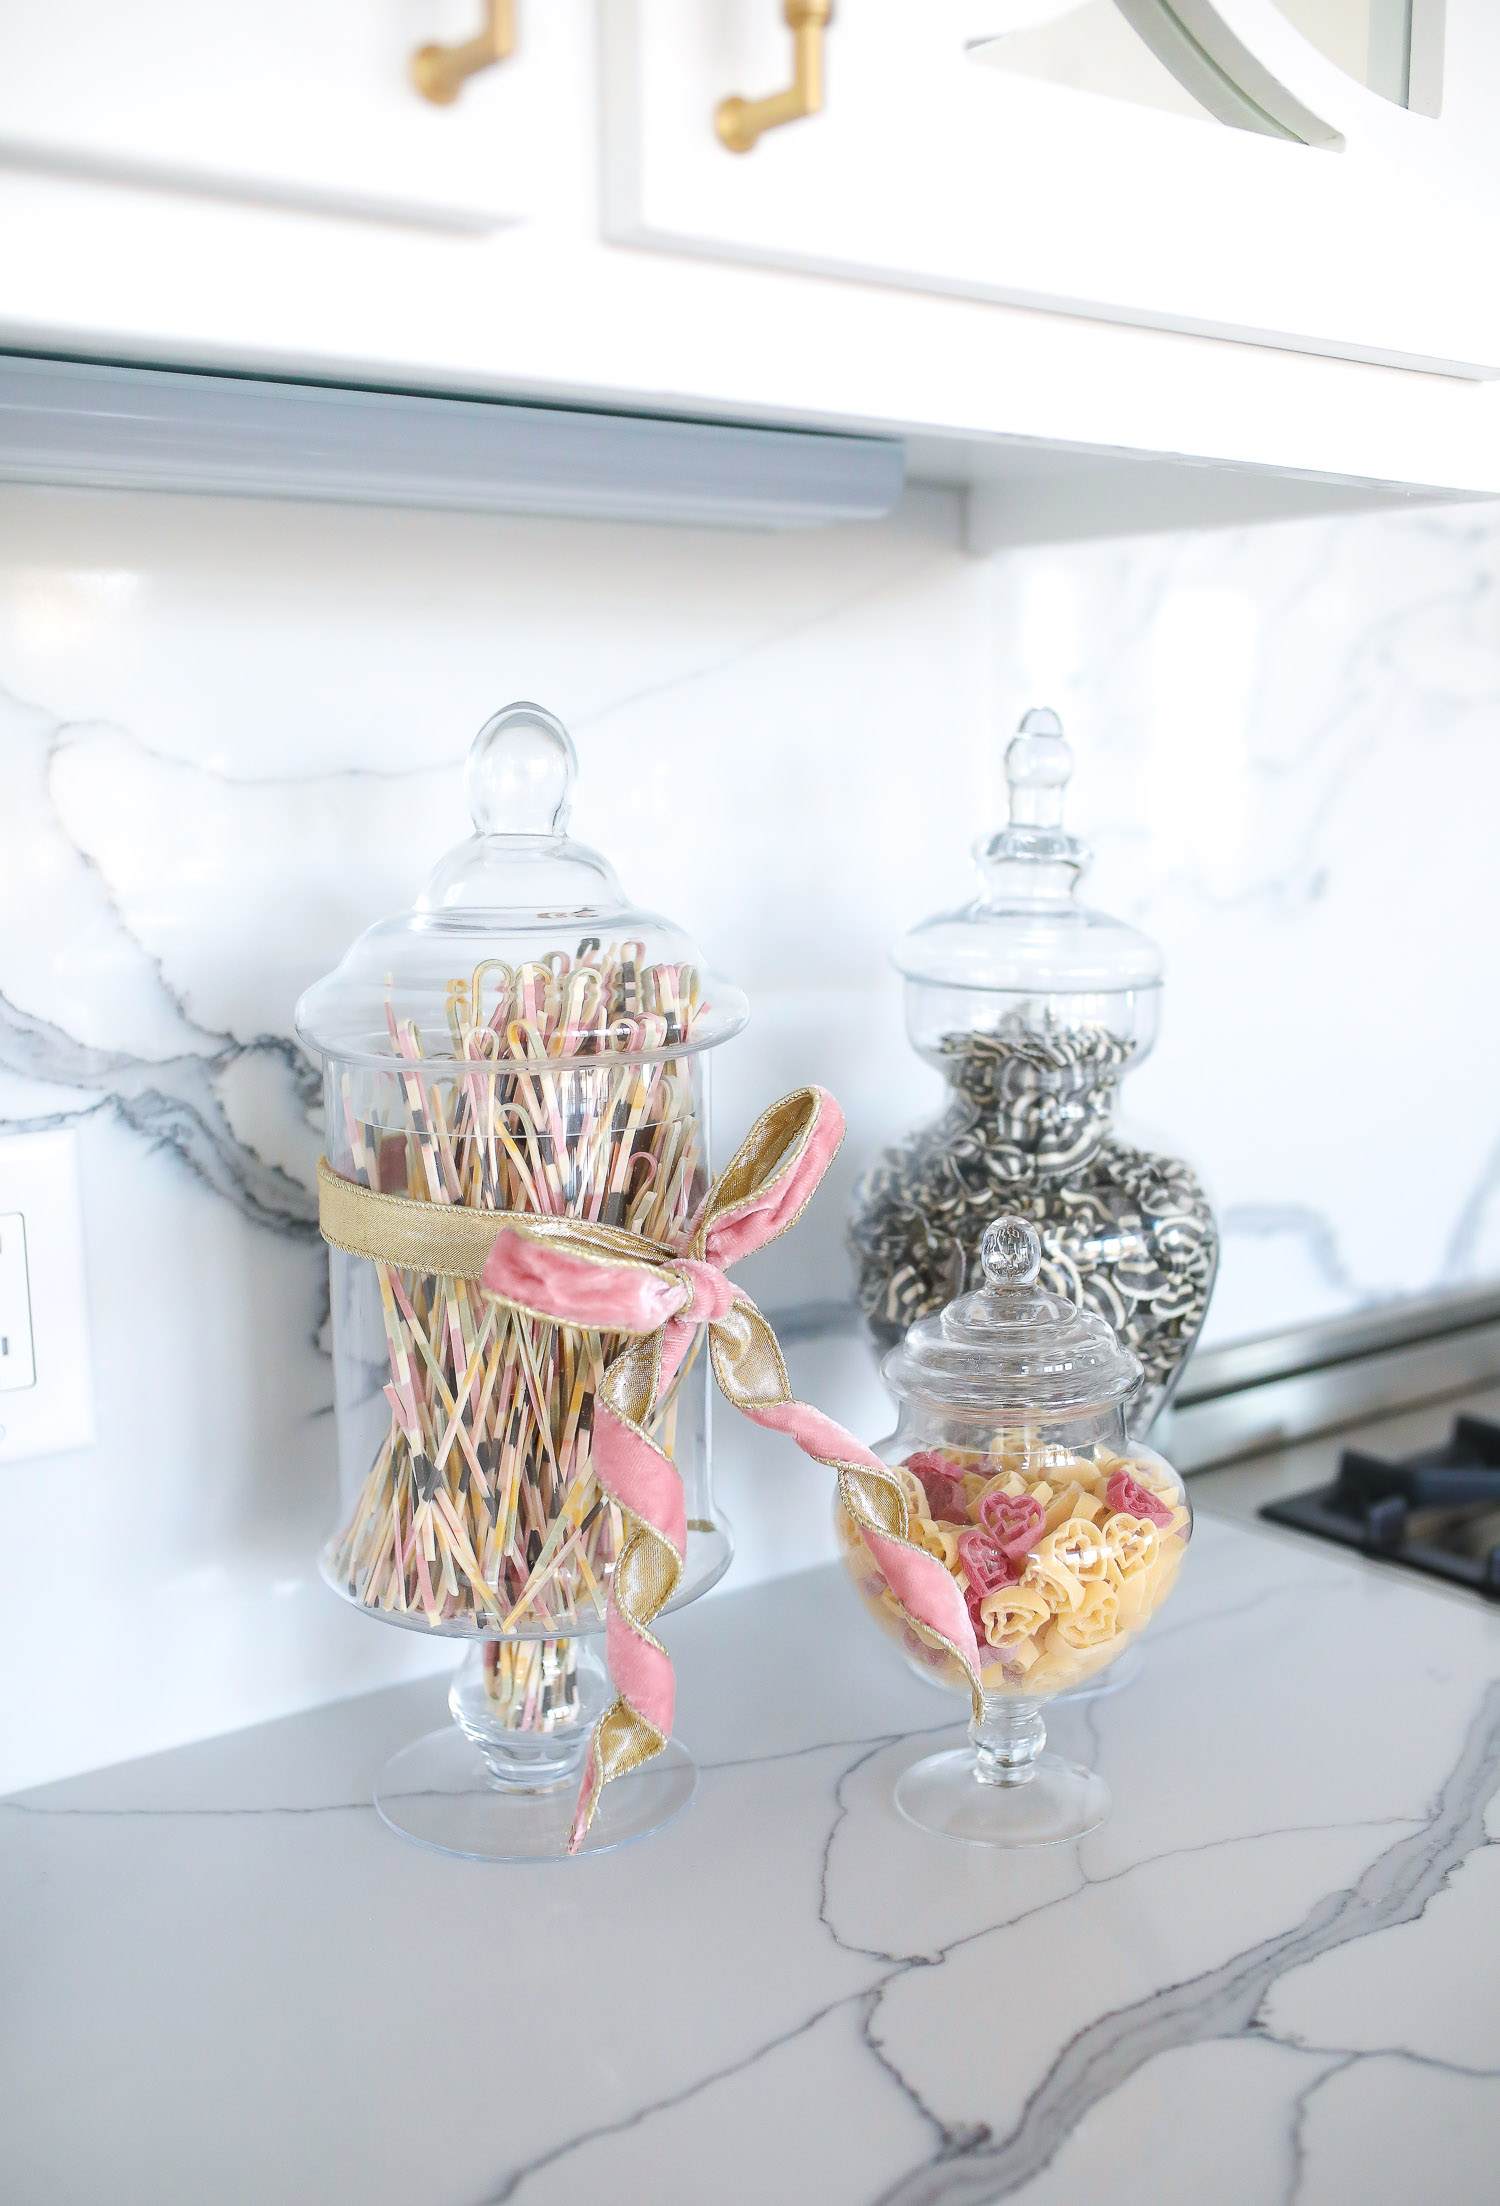 jars with noodles in kitchen, swig marble cup insulated, top amazon must haves, amazon best buys 2020, emily gemma, amazon prime must haves blog post,_-4 | Amazon Prime Favorites by popular US life and style blog, The Sweetest Thing: image of Amazon Prime Apothecary jars.